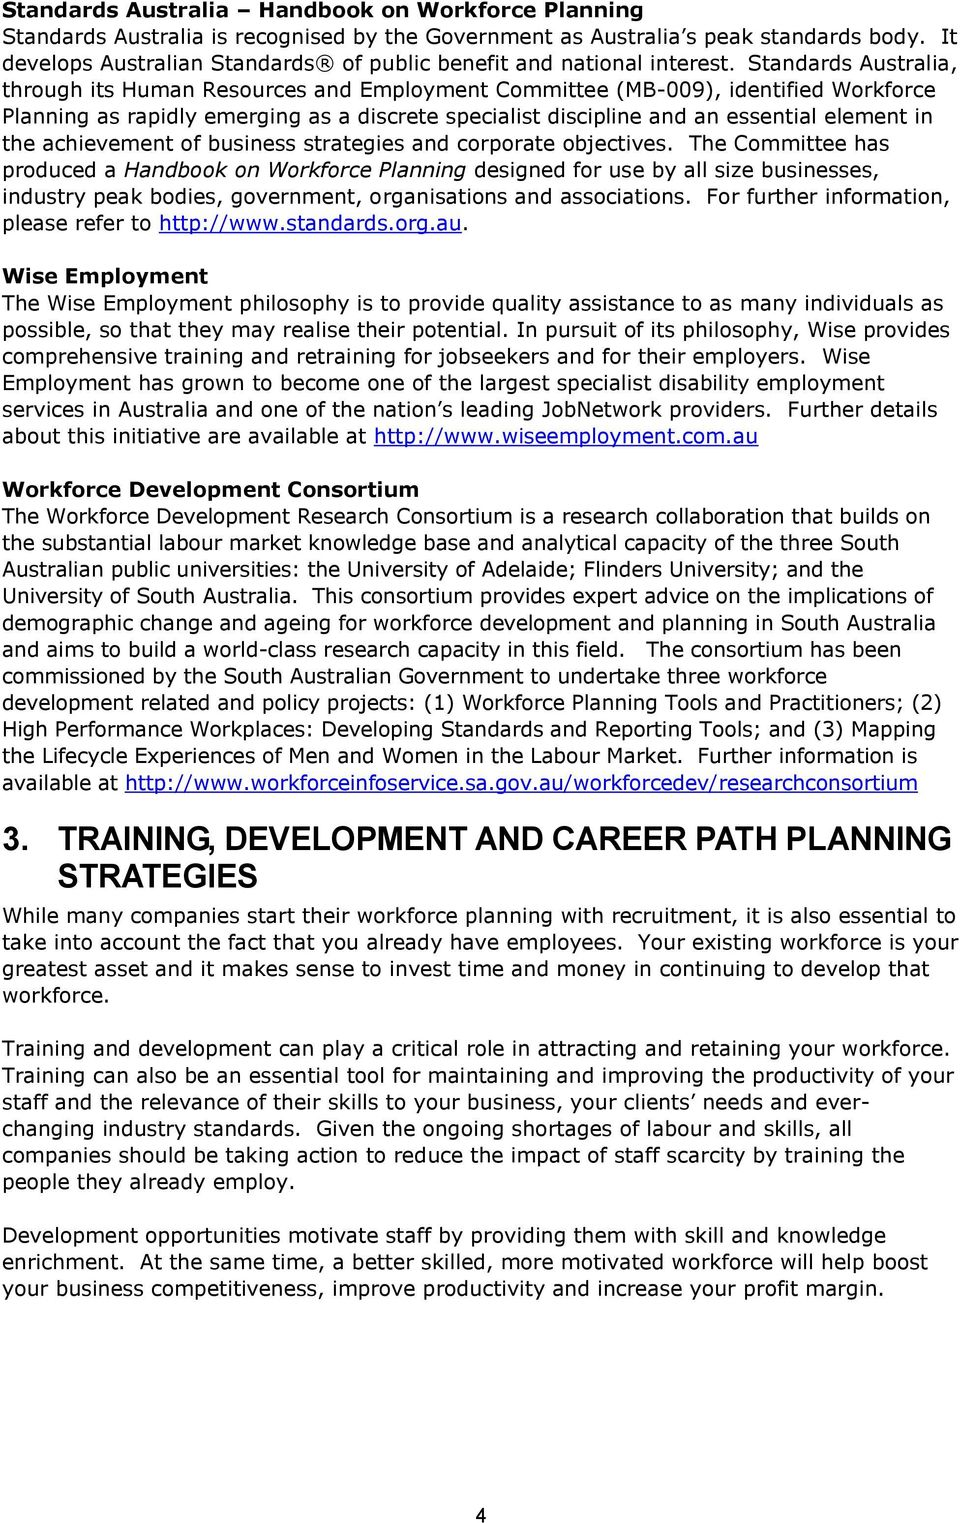 Standards Australia, through its Human Resources and Employment Committee (MB-009), identified Workforce Planning as rapidly emerging as a discrete specialist discipline and an essential element in